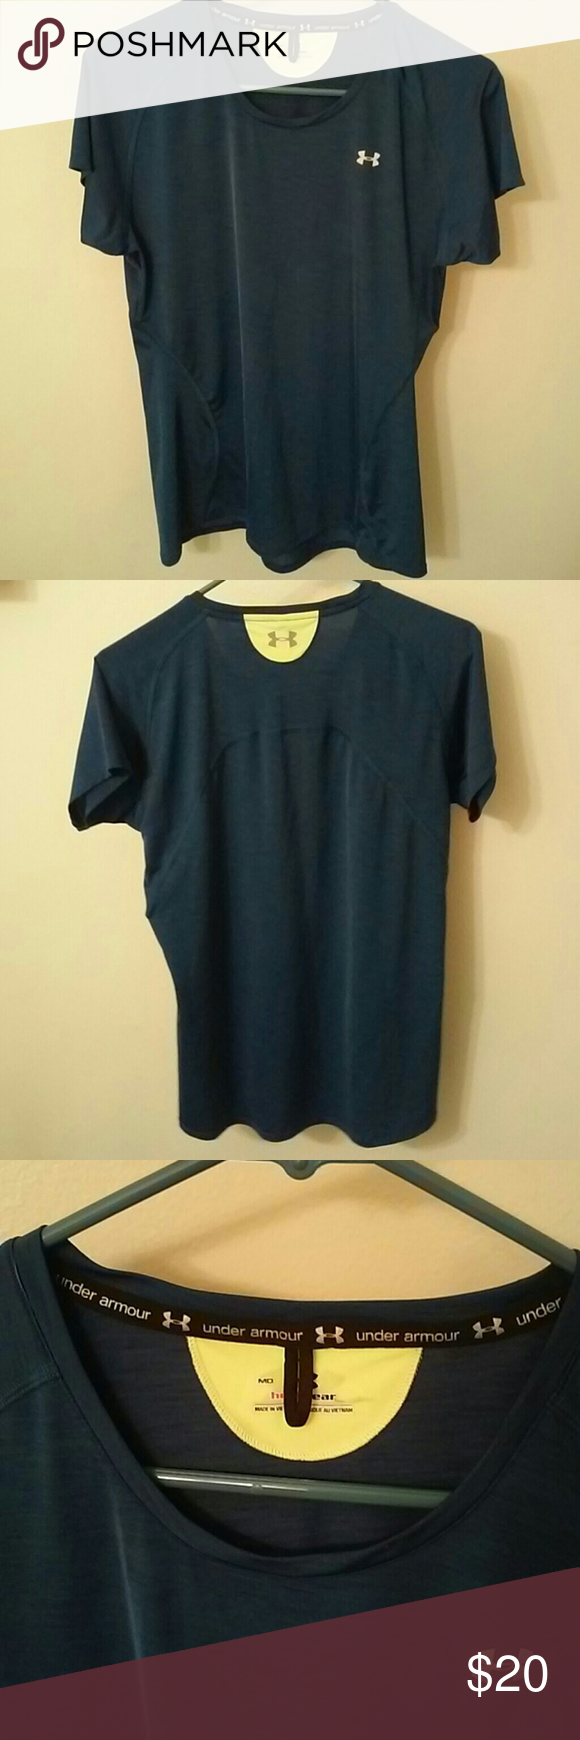 Under Armour Dry Fit Top Under Armour dry fit blue top. Never worn. Under Armour Tops Tees - Short Sleeve